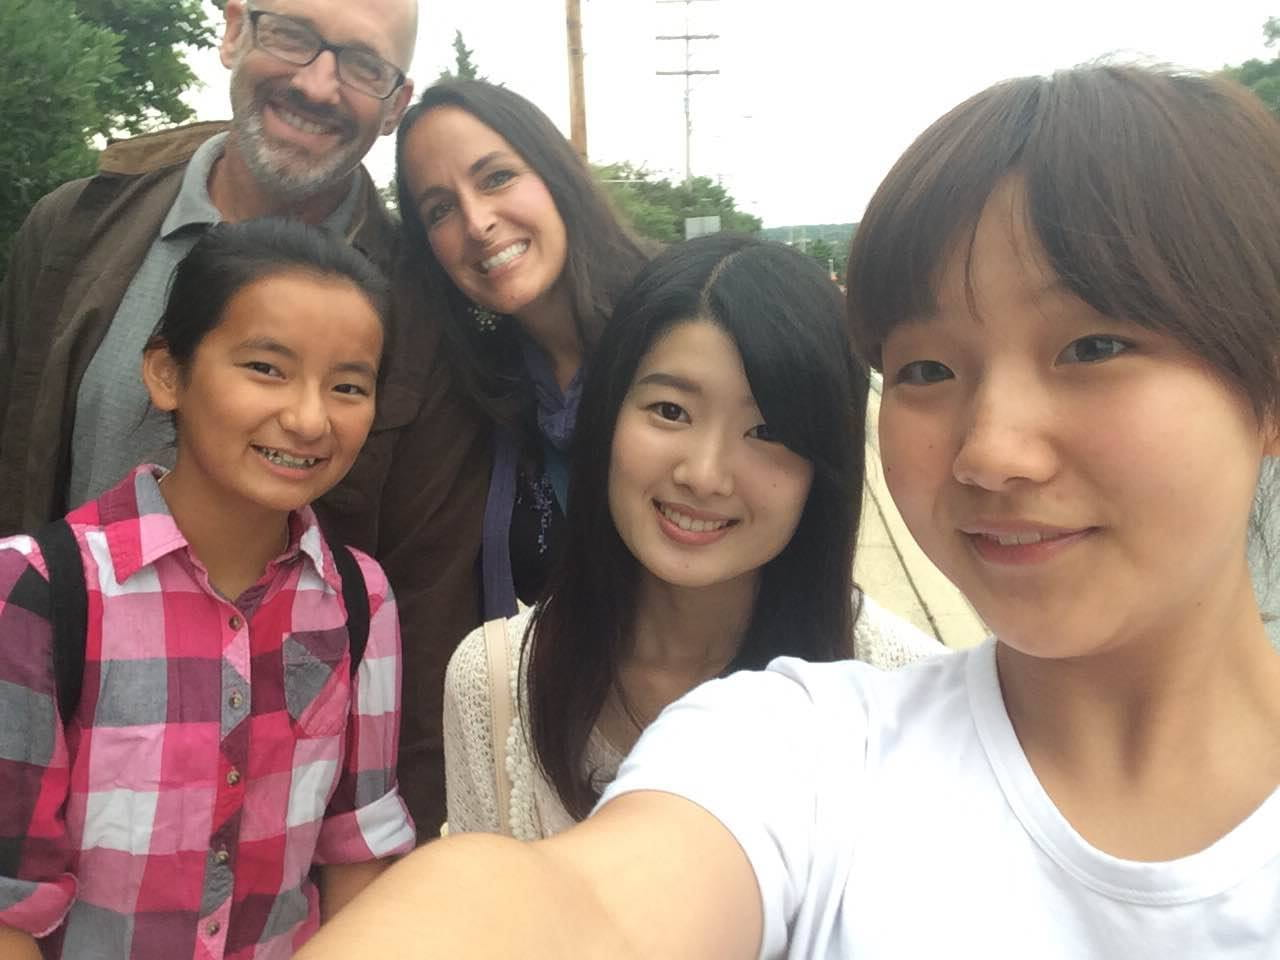 ELI student with her homestay hosts, all smiling for a group selfie